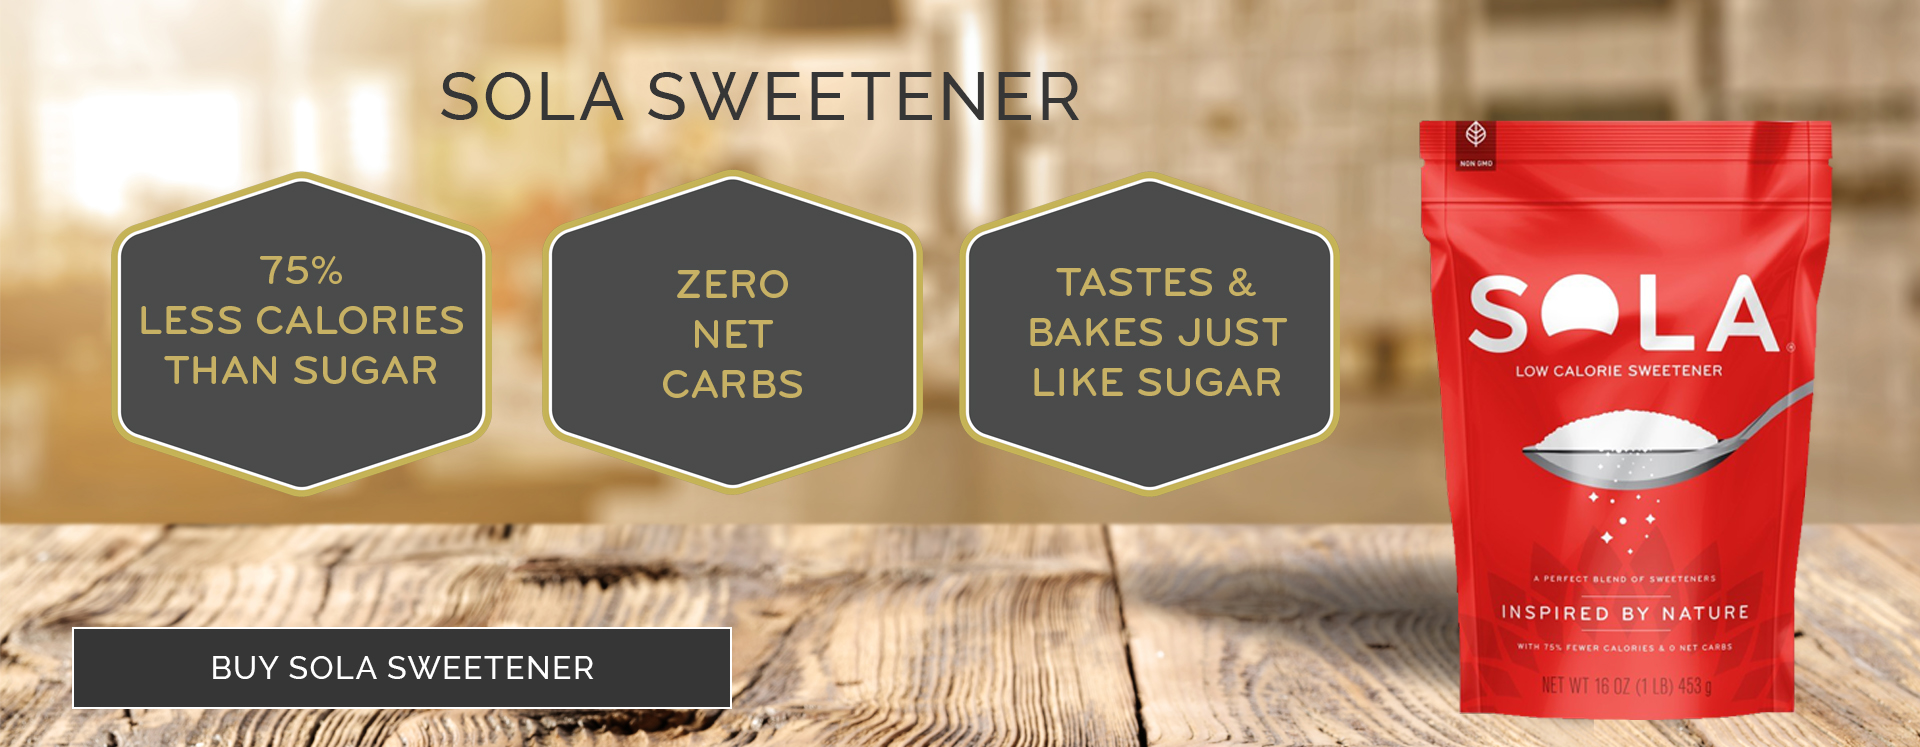 BEST LOW CARB KETO SWEETENER SOLA SWEETENER.jpg